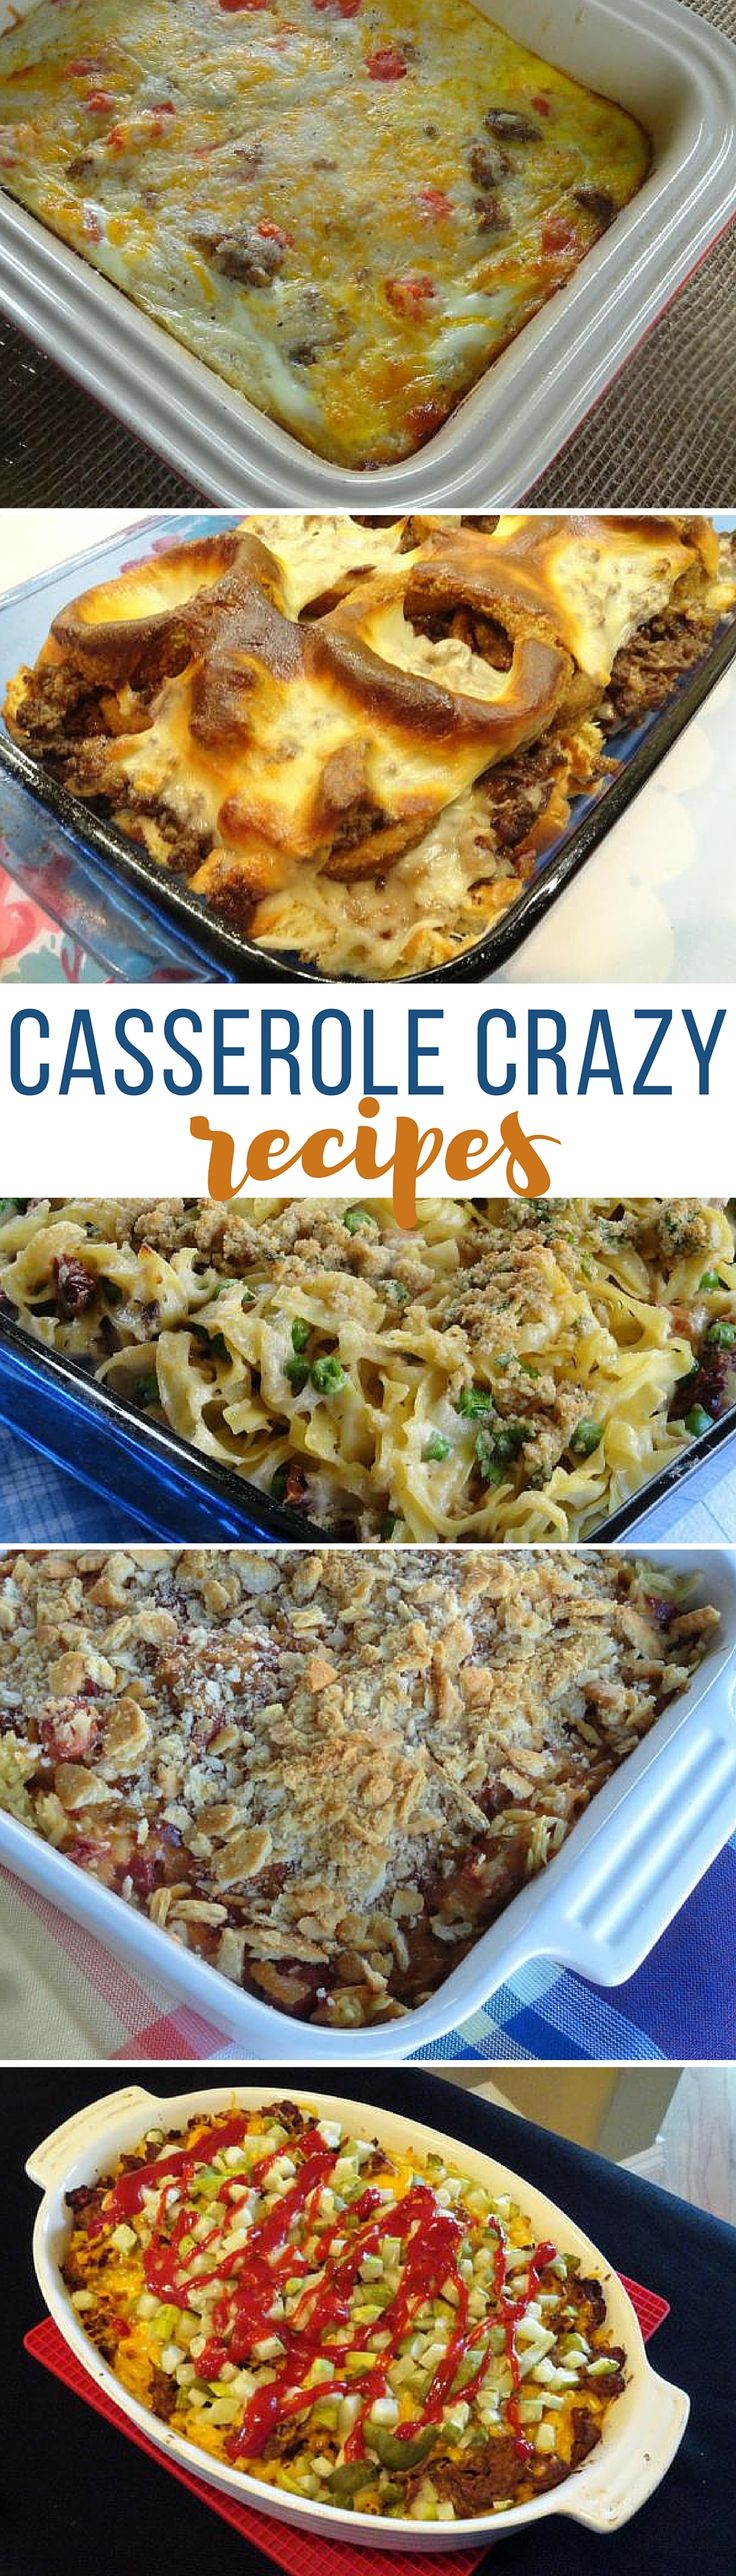 We've gone crazy for casserole recipes! There are so many easy, fun and tasty dishes to try... and so little time! Try one of these yummy casseroles tonight.